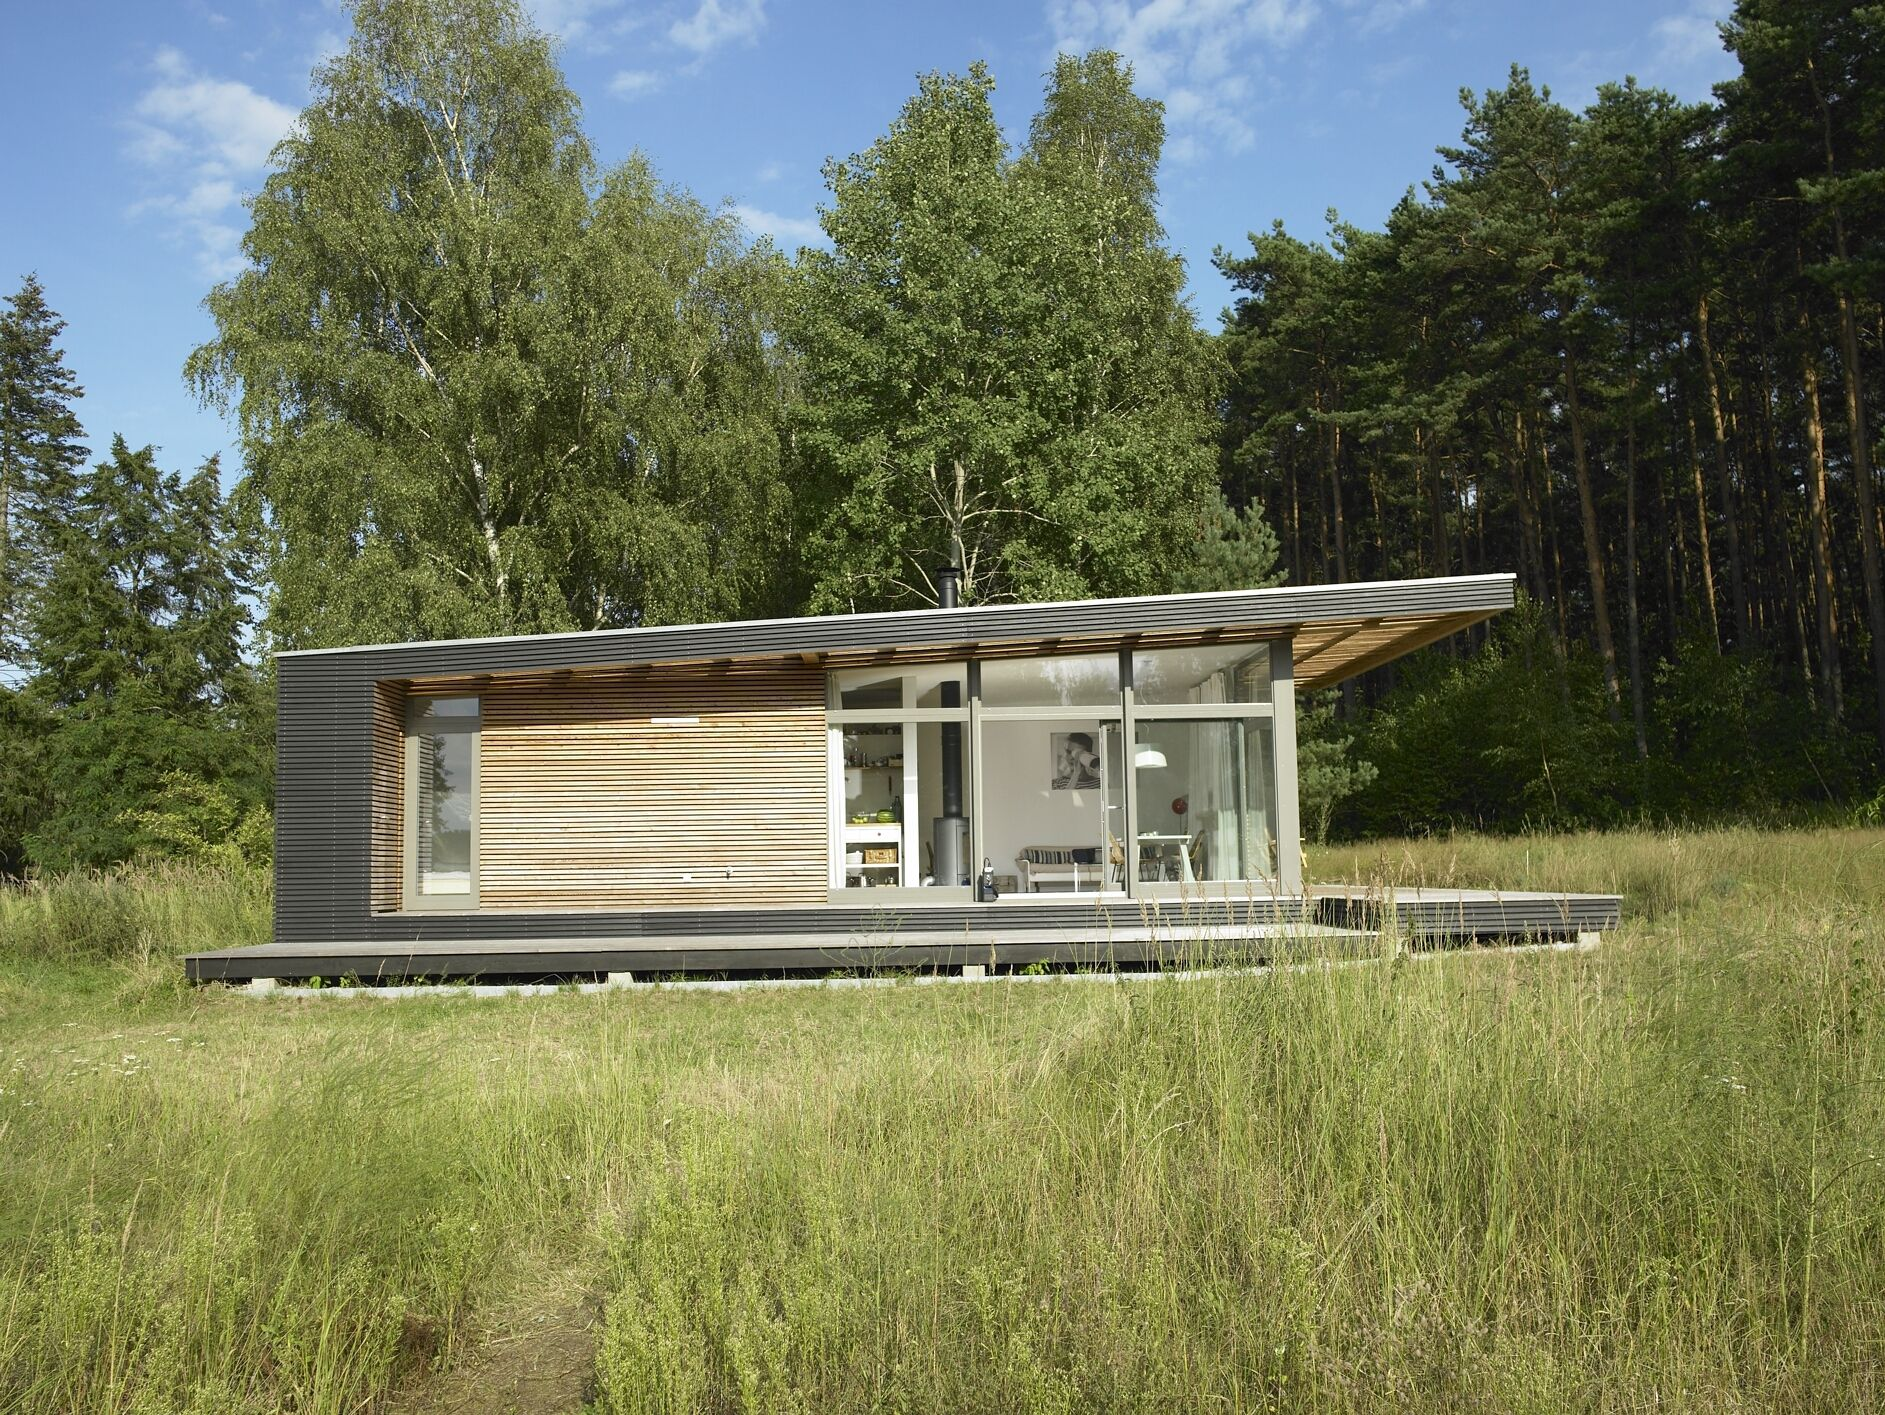 7 small homes youll want for youself - Deckideen Fr Modulare Huser